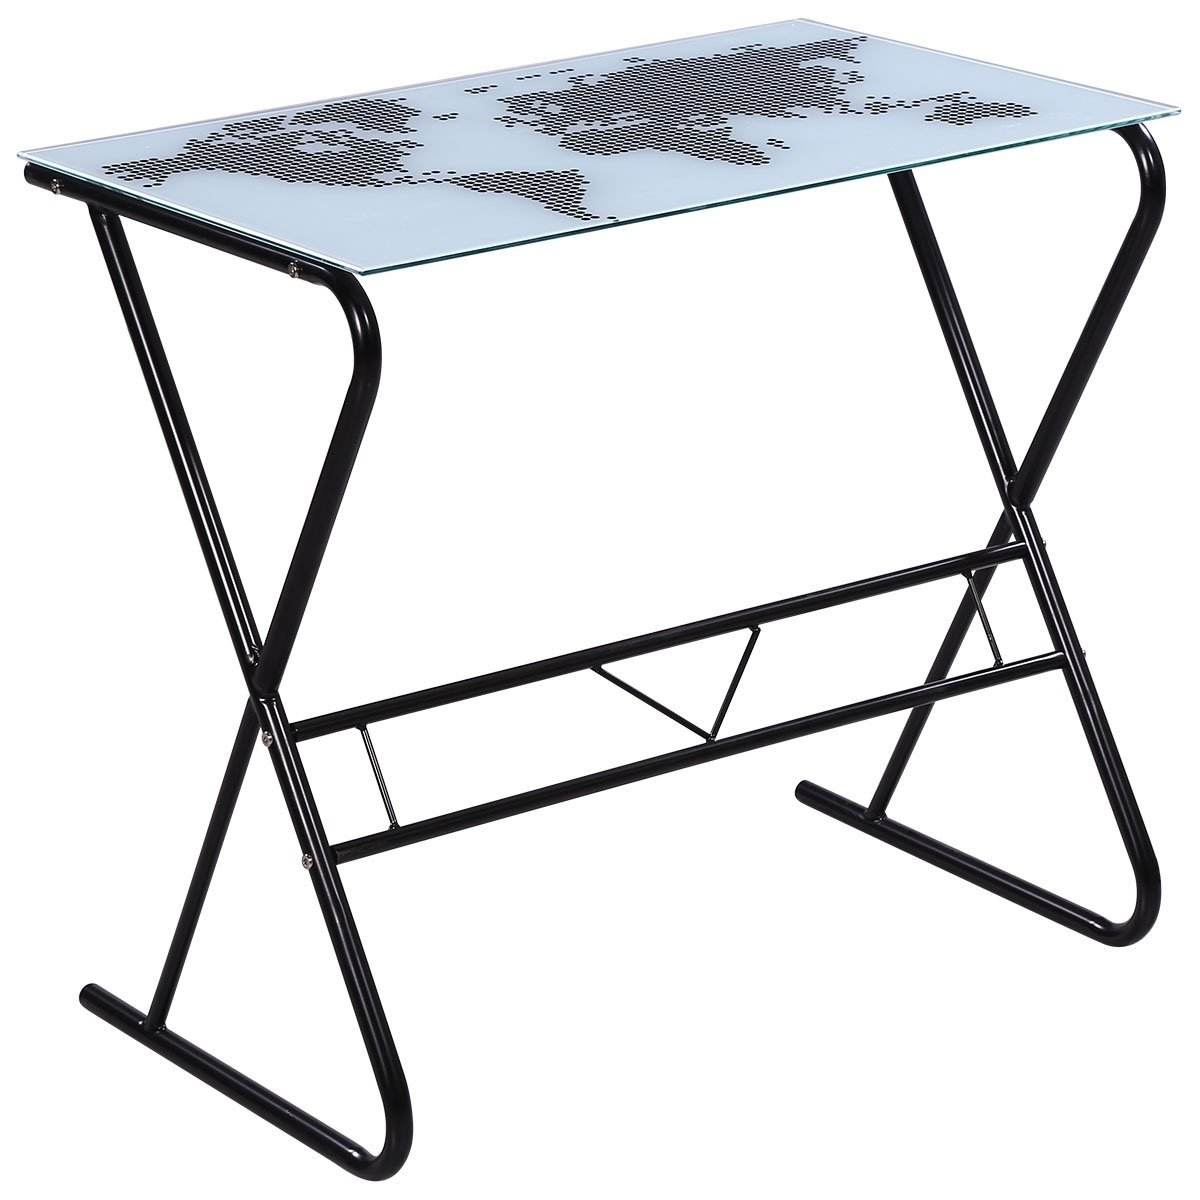 Cheap map desk find map desk deals on line at alibaba get quotations vidaxl glass desk with world map pattern gumiabroncs Images